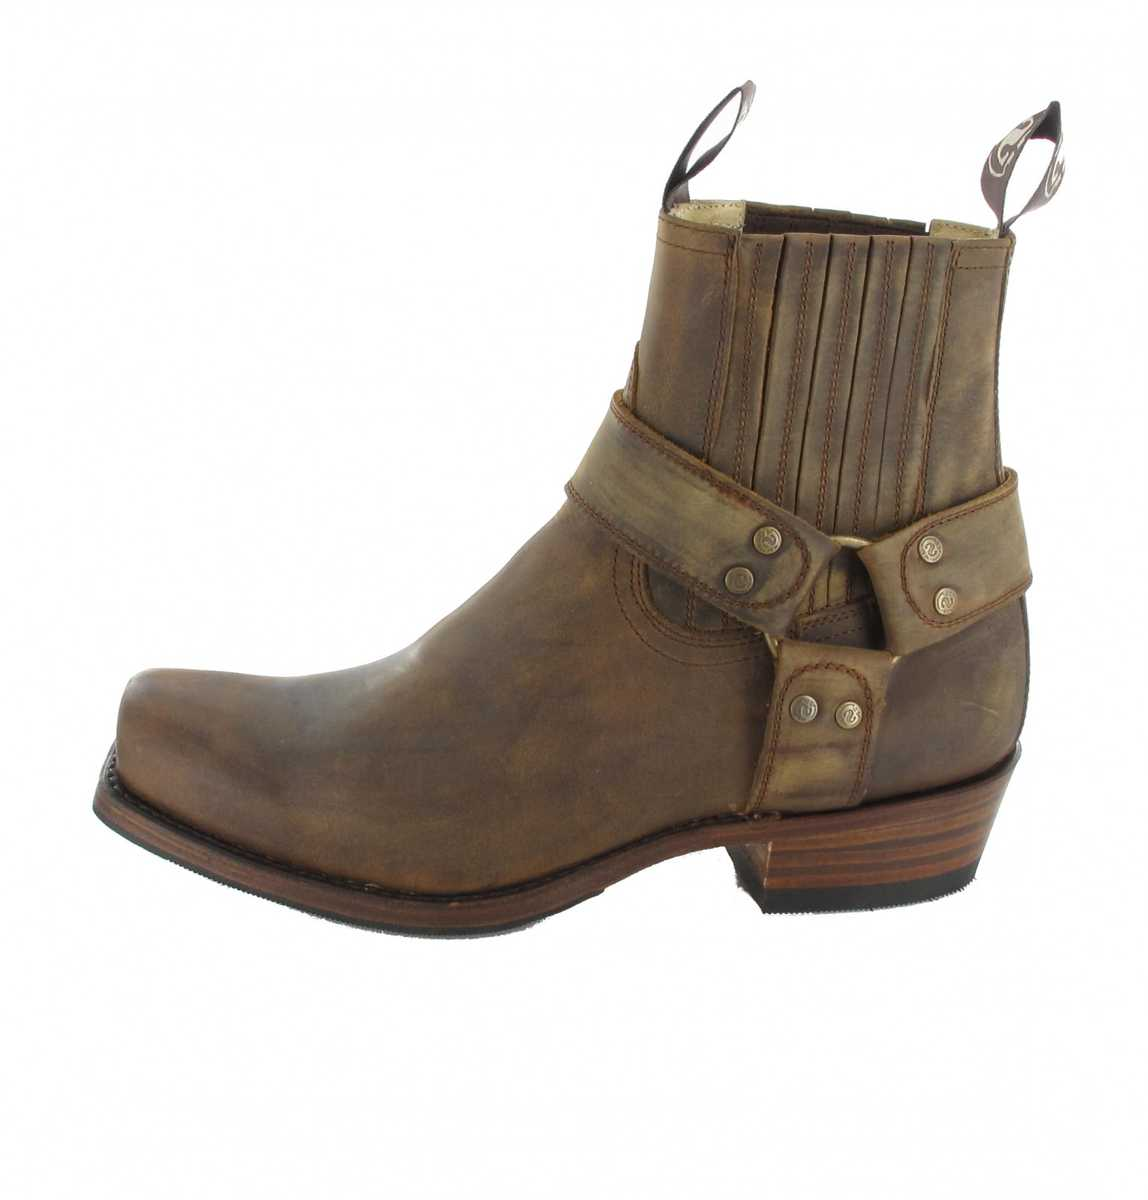 ccc71a14f21 Sendra Boots 8286 Tang biker ankle boot - Brown – Bild 2